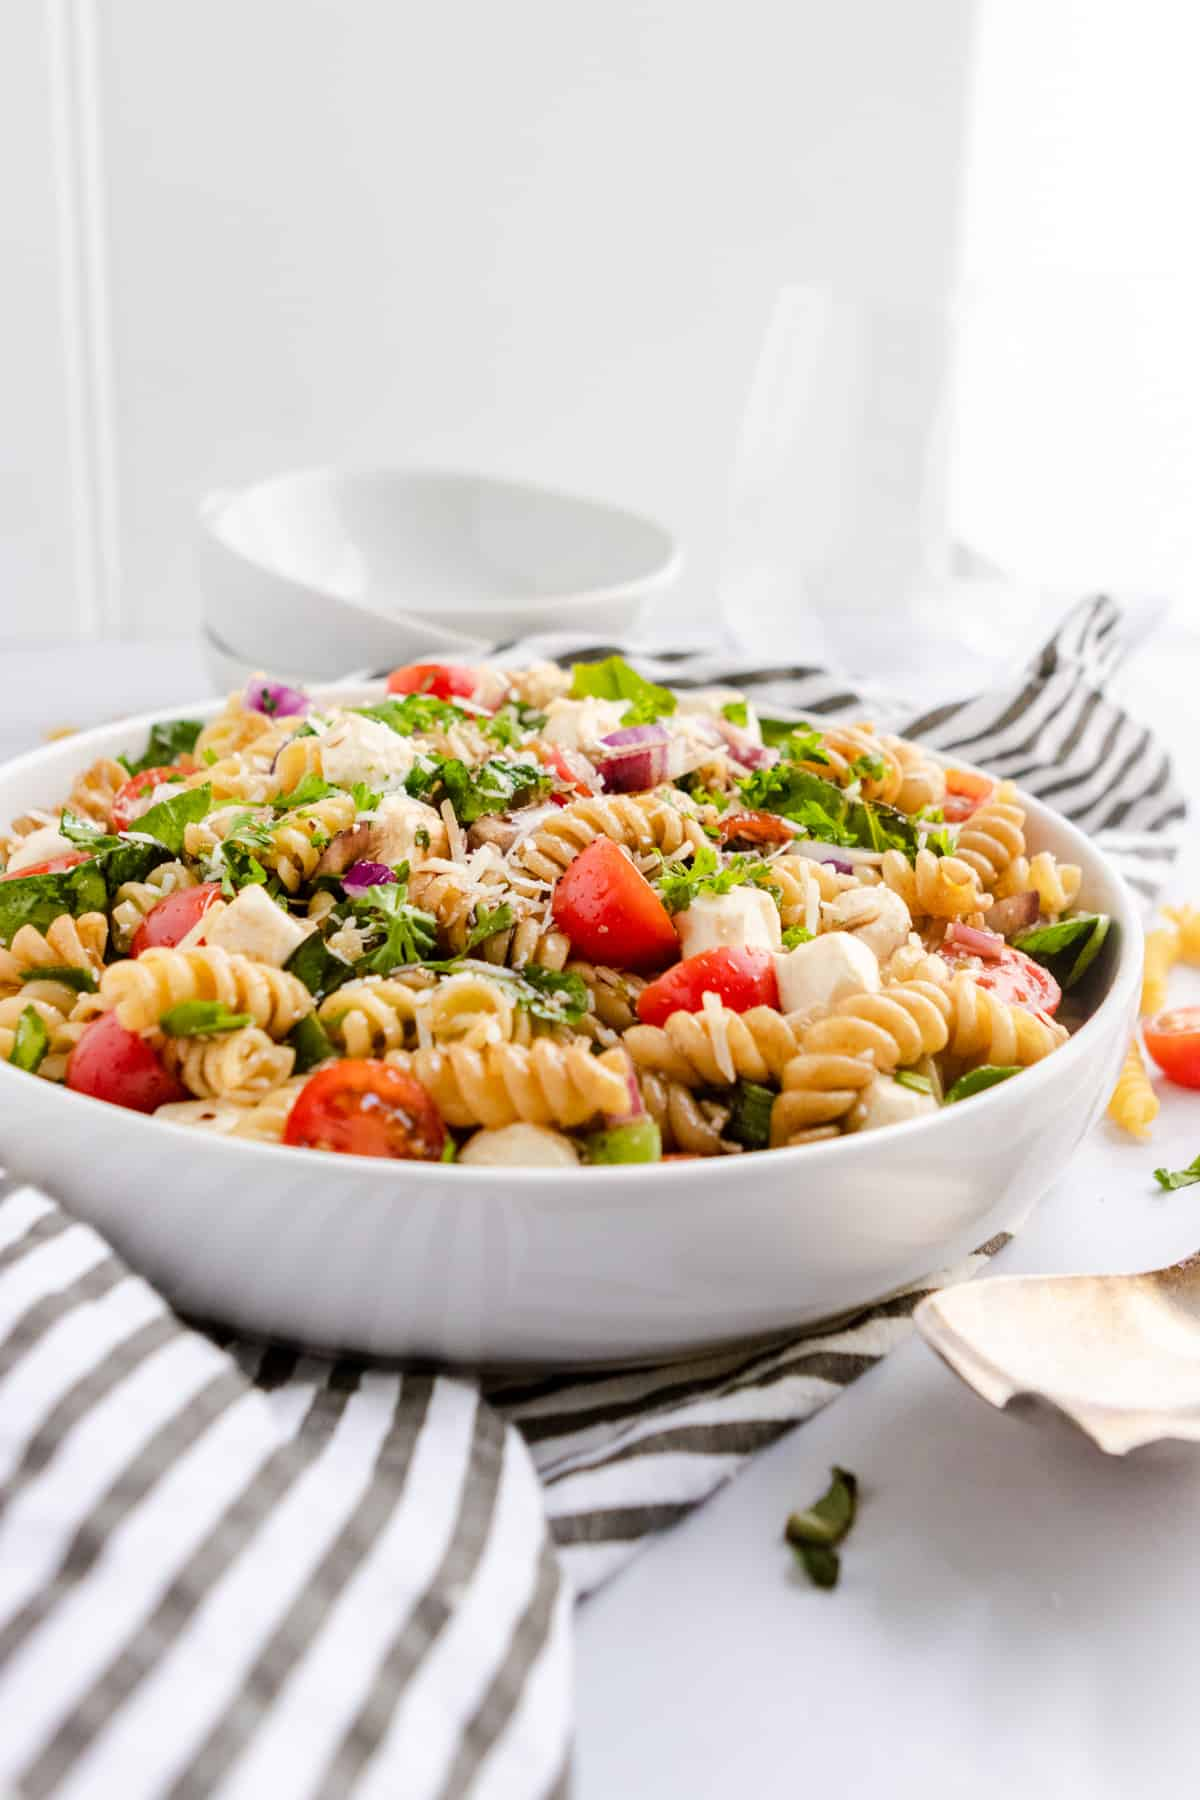 Pasta salad in white bowl with serving bowls.